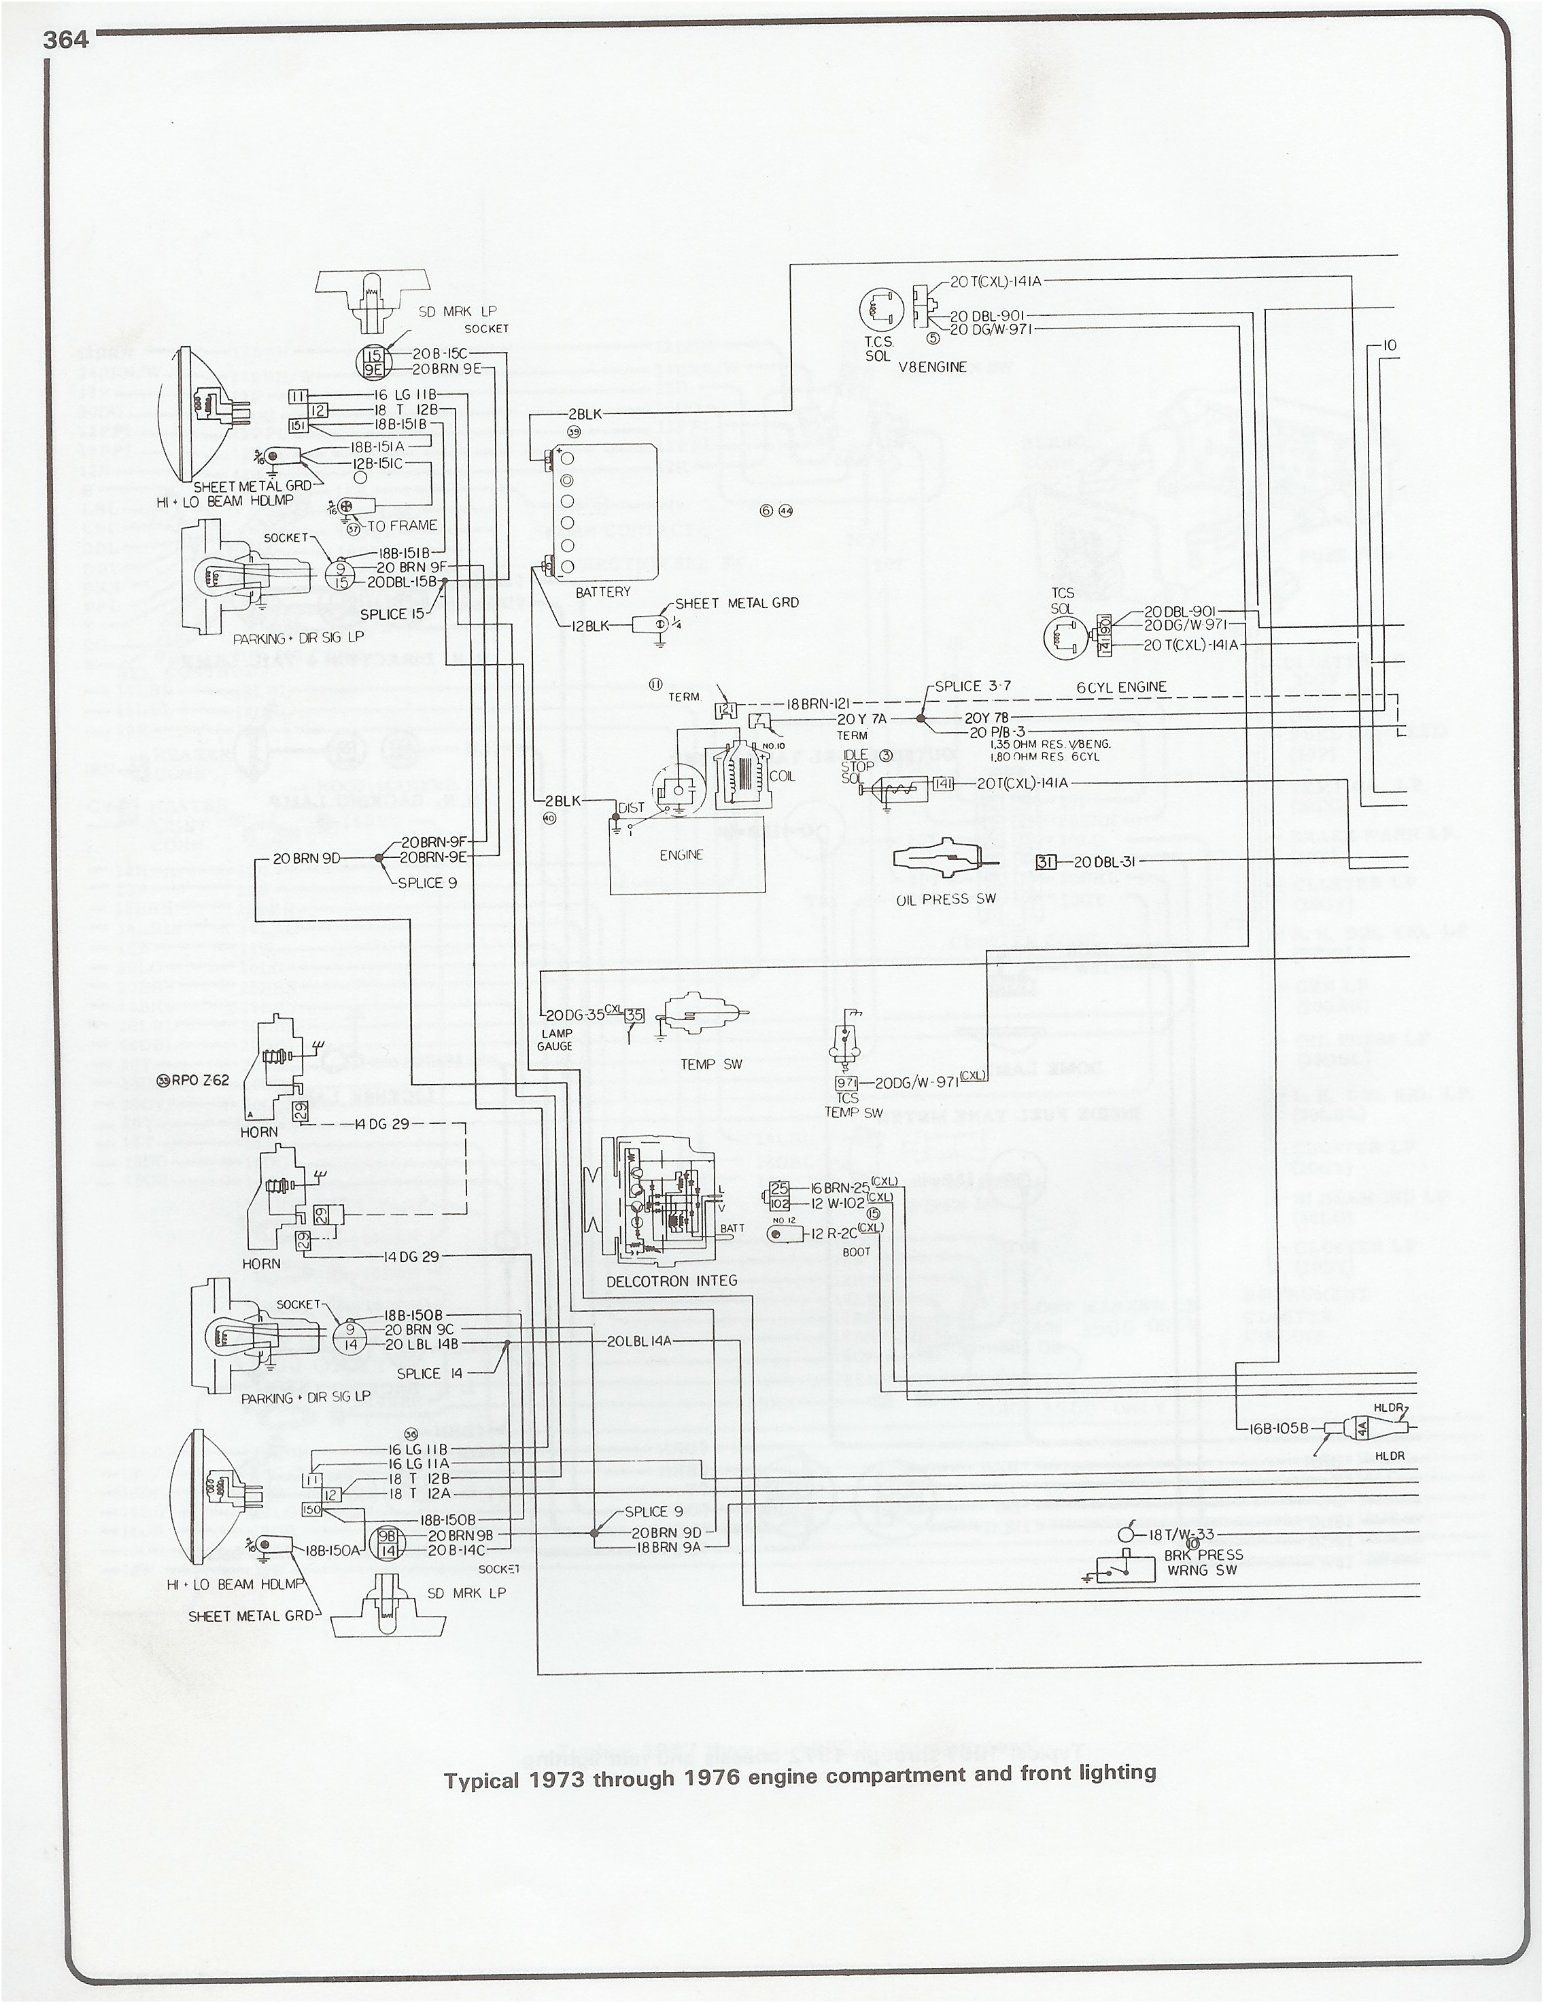 wiring diagram 1973 1976 chevy pickup chevy wiring diagram 2006 chevy  silverado wiring diagram chevy pickup